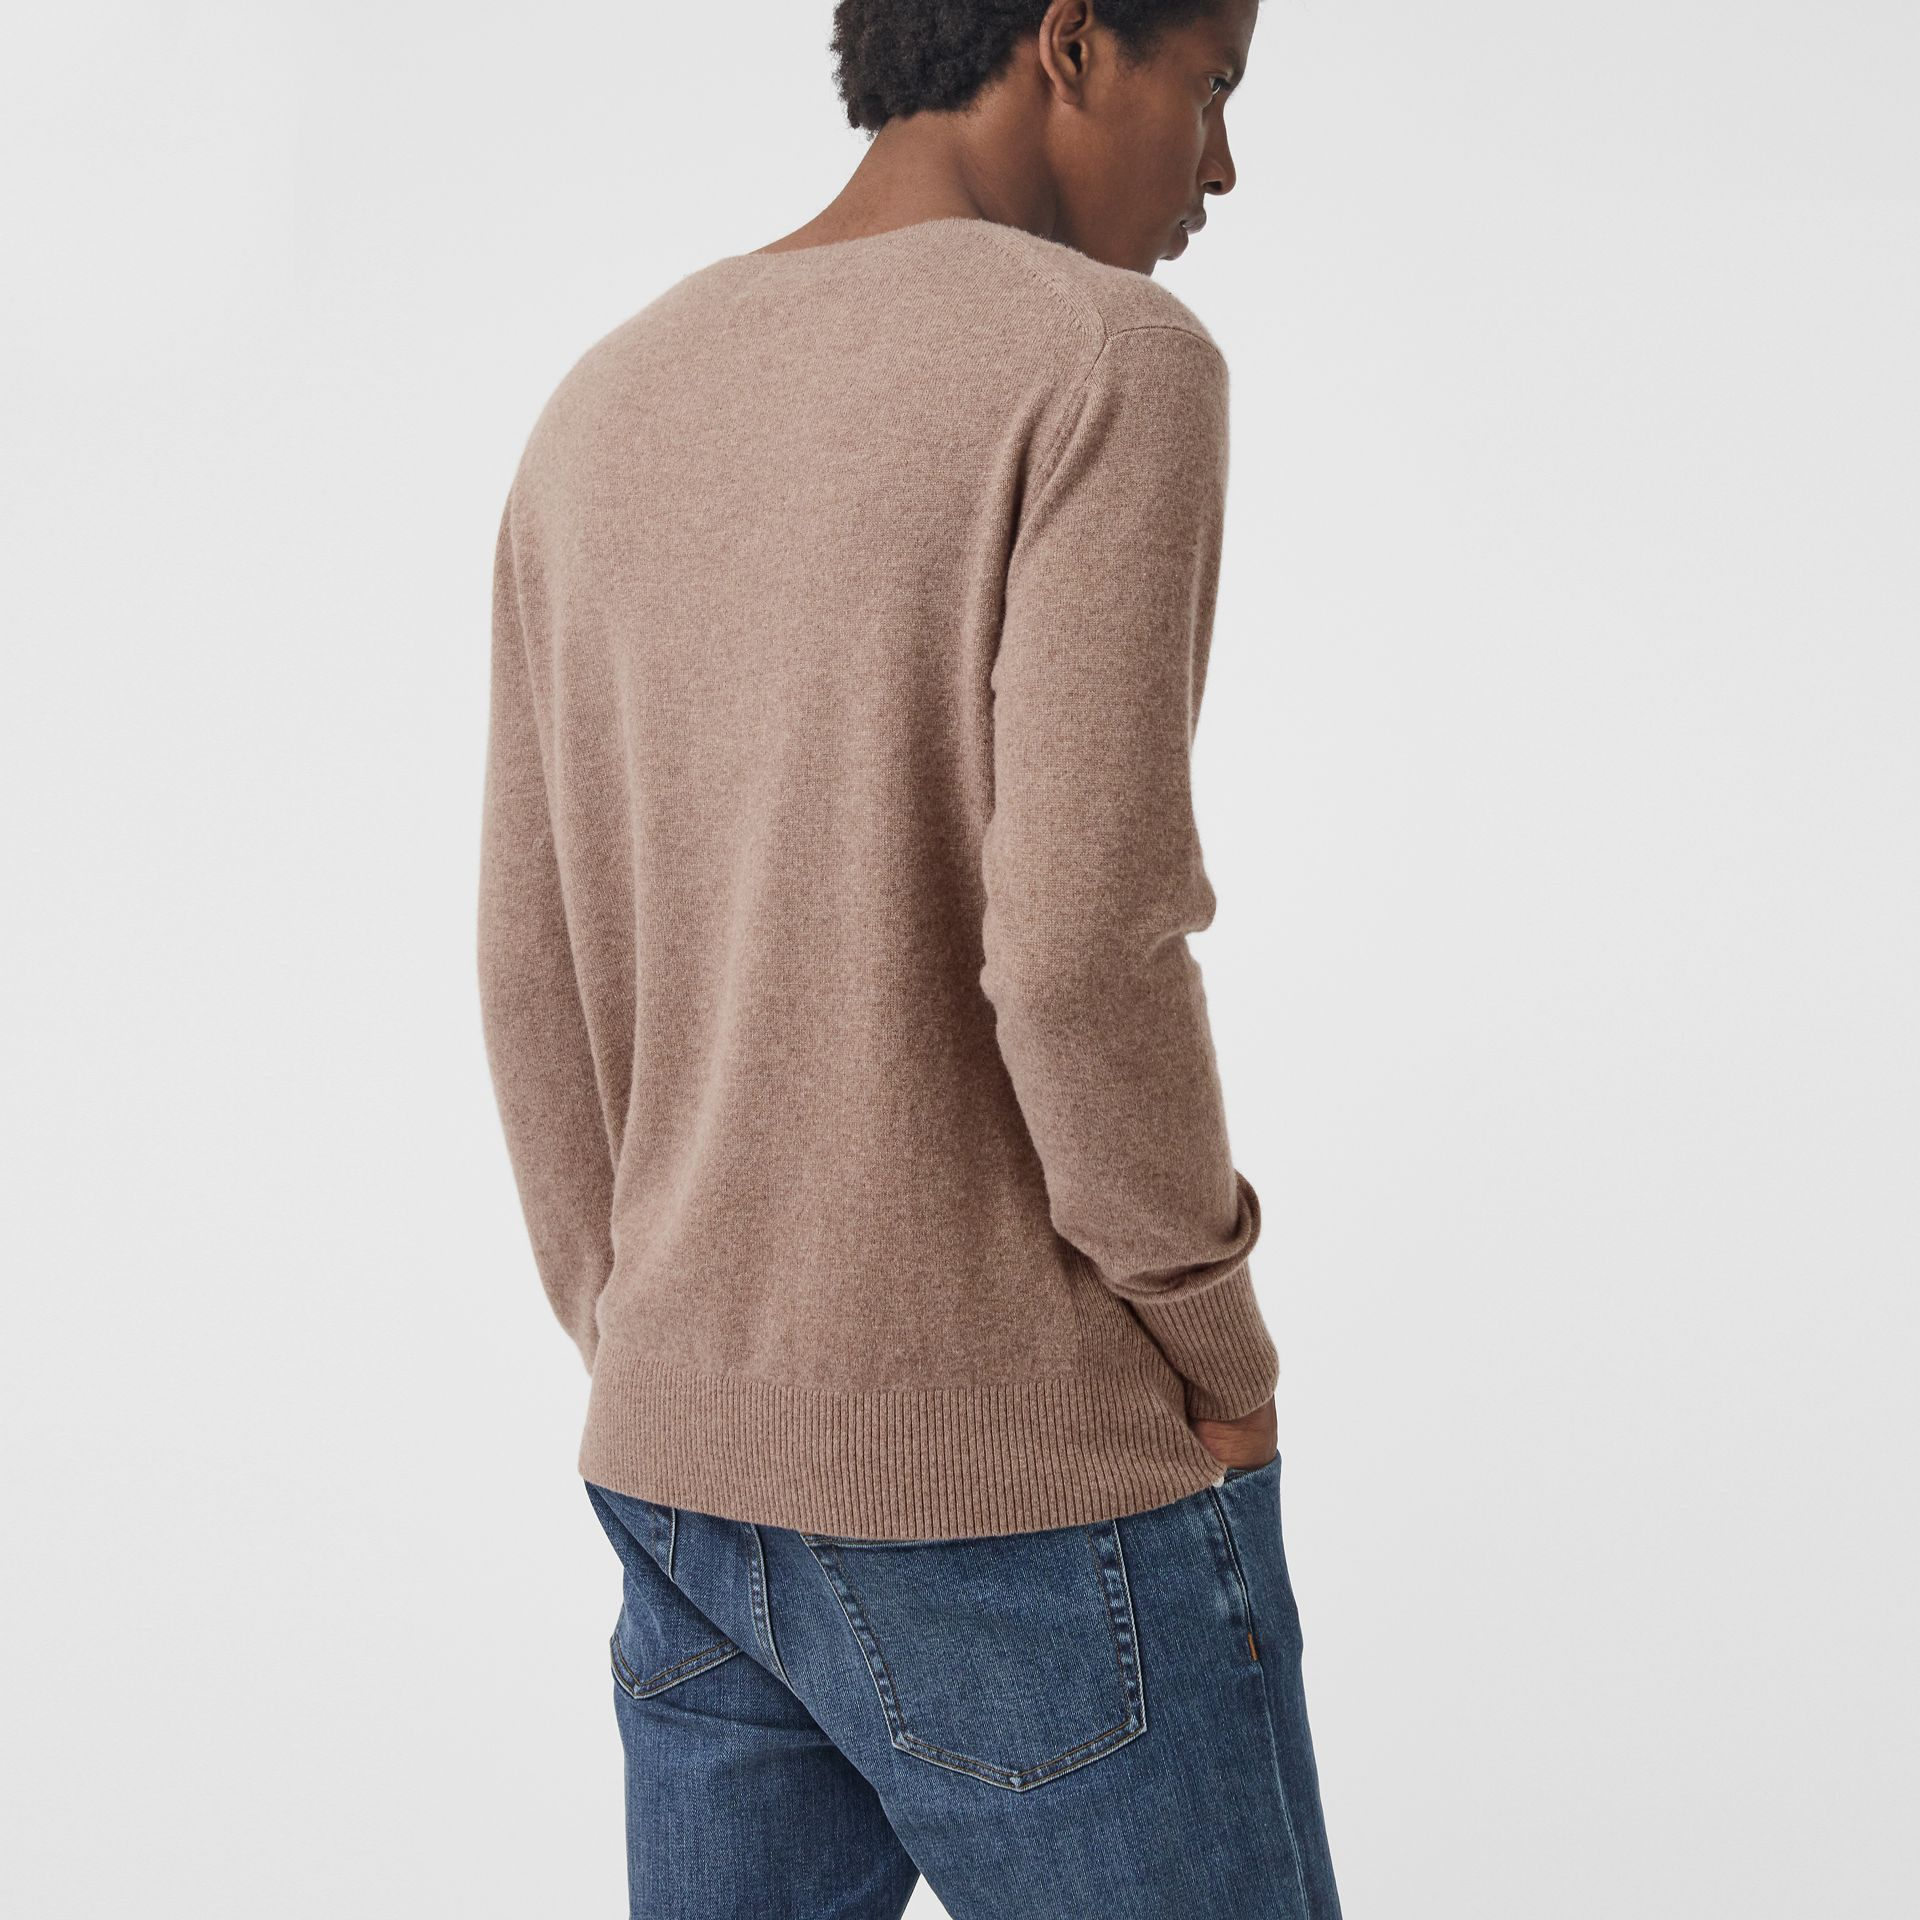 Embroidered Archive Logo Cashmere Sweater in Camel Melange - Men | Burberry United States - gallery image 2